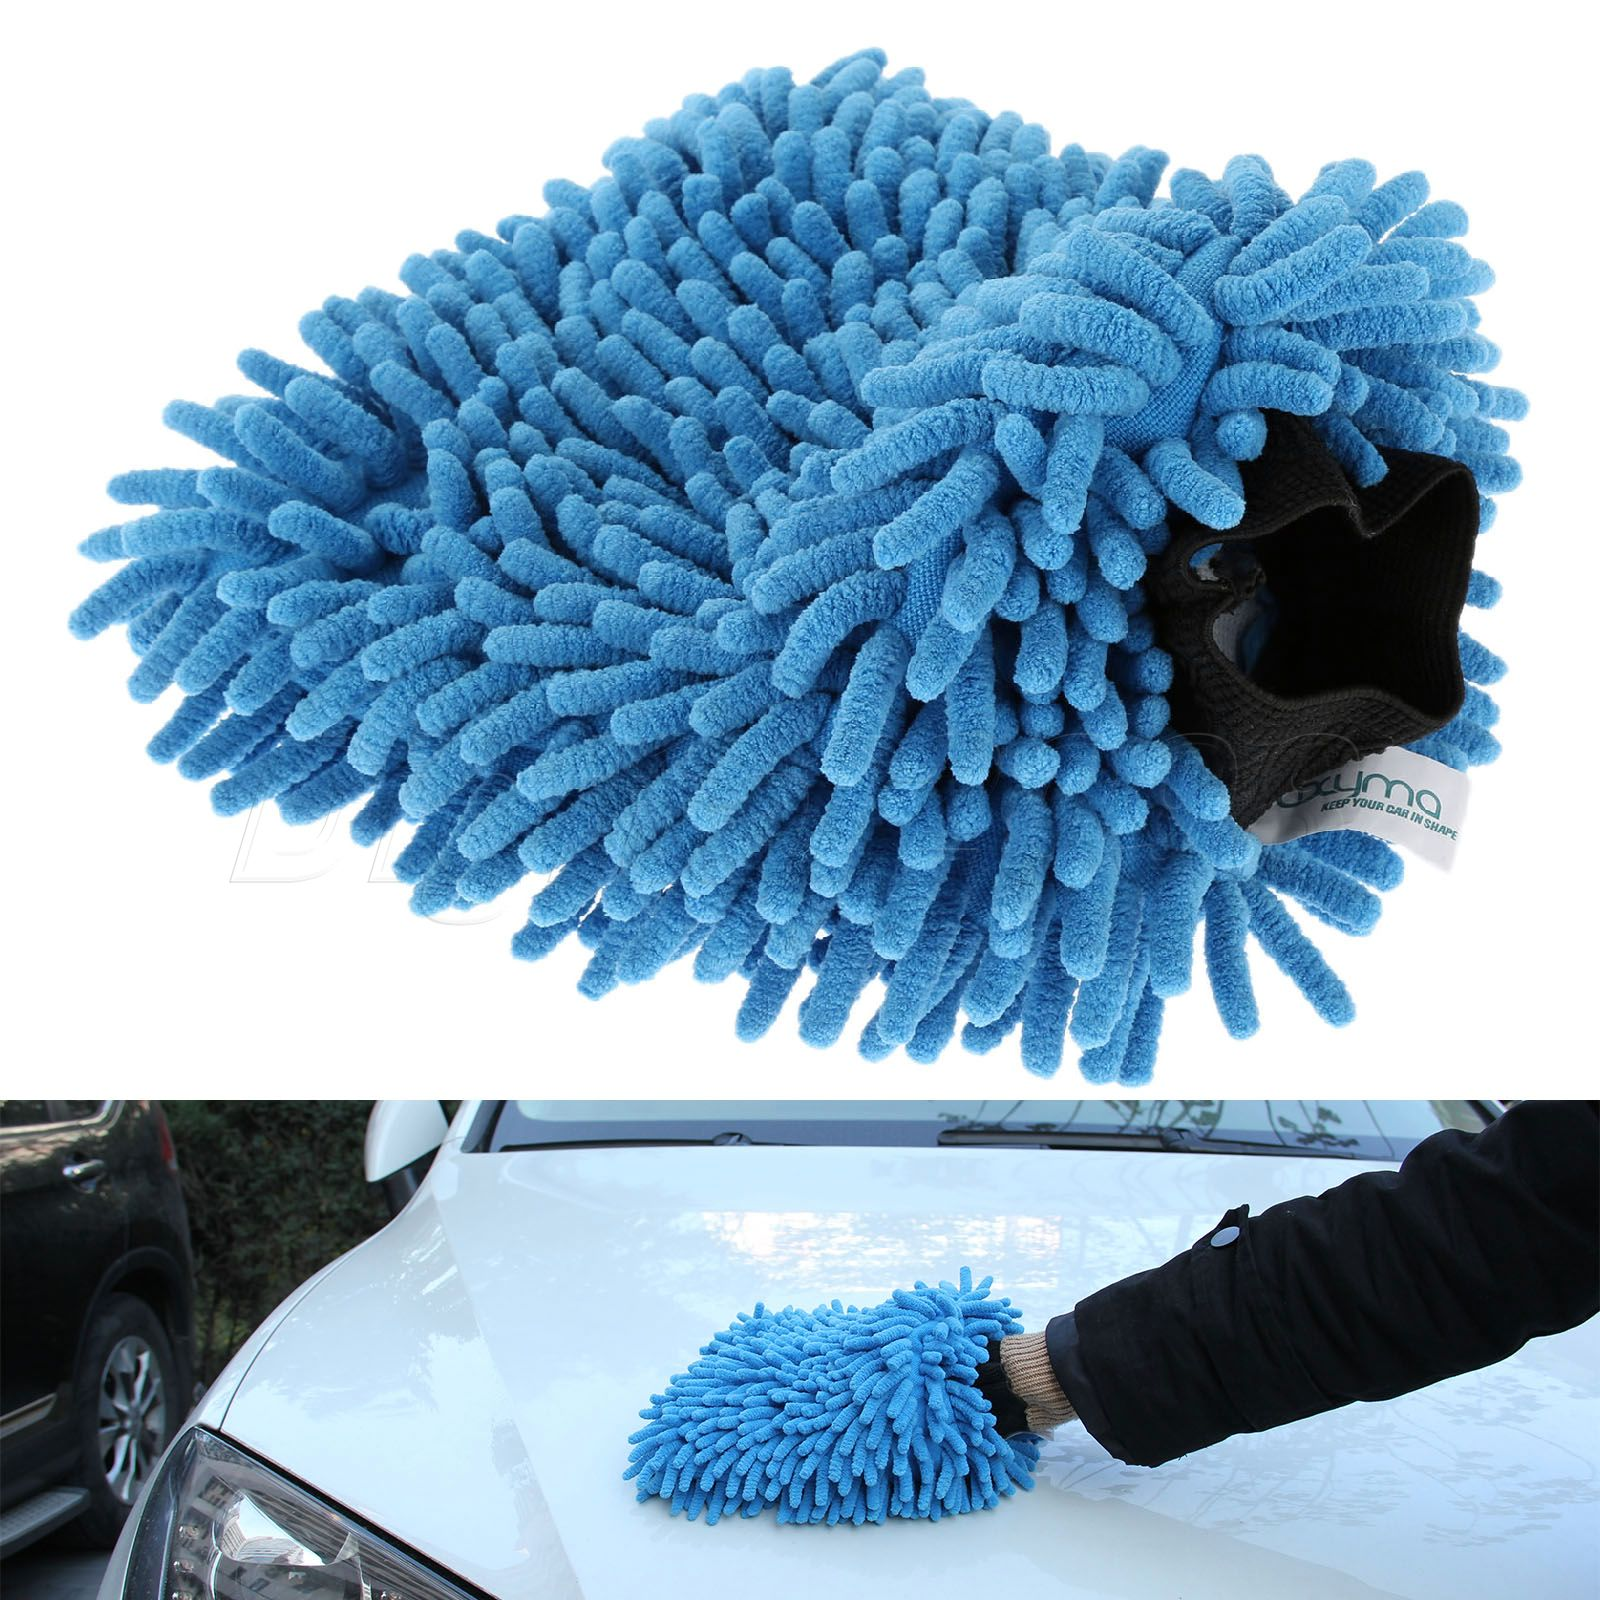 Yetaha Car Wash Gloves Microfiber Car Cleaning Care Detailing Tools Chenille Soft Towel For Automotives Household Free Shipping